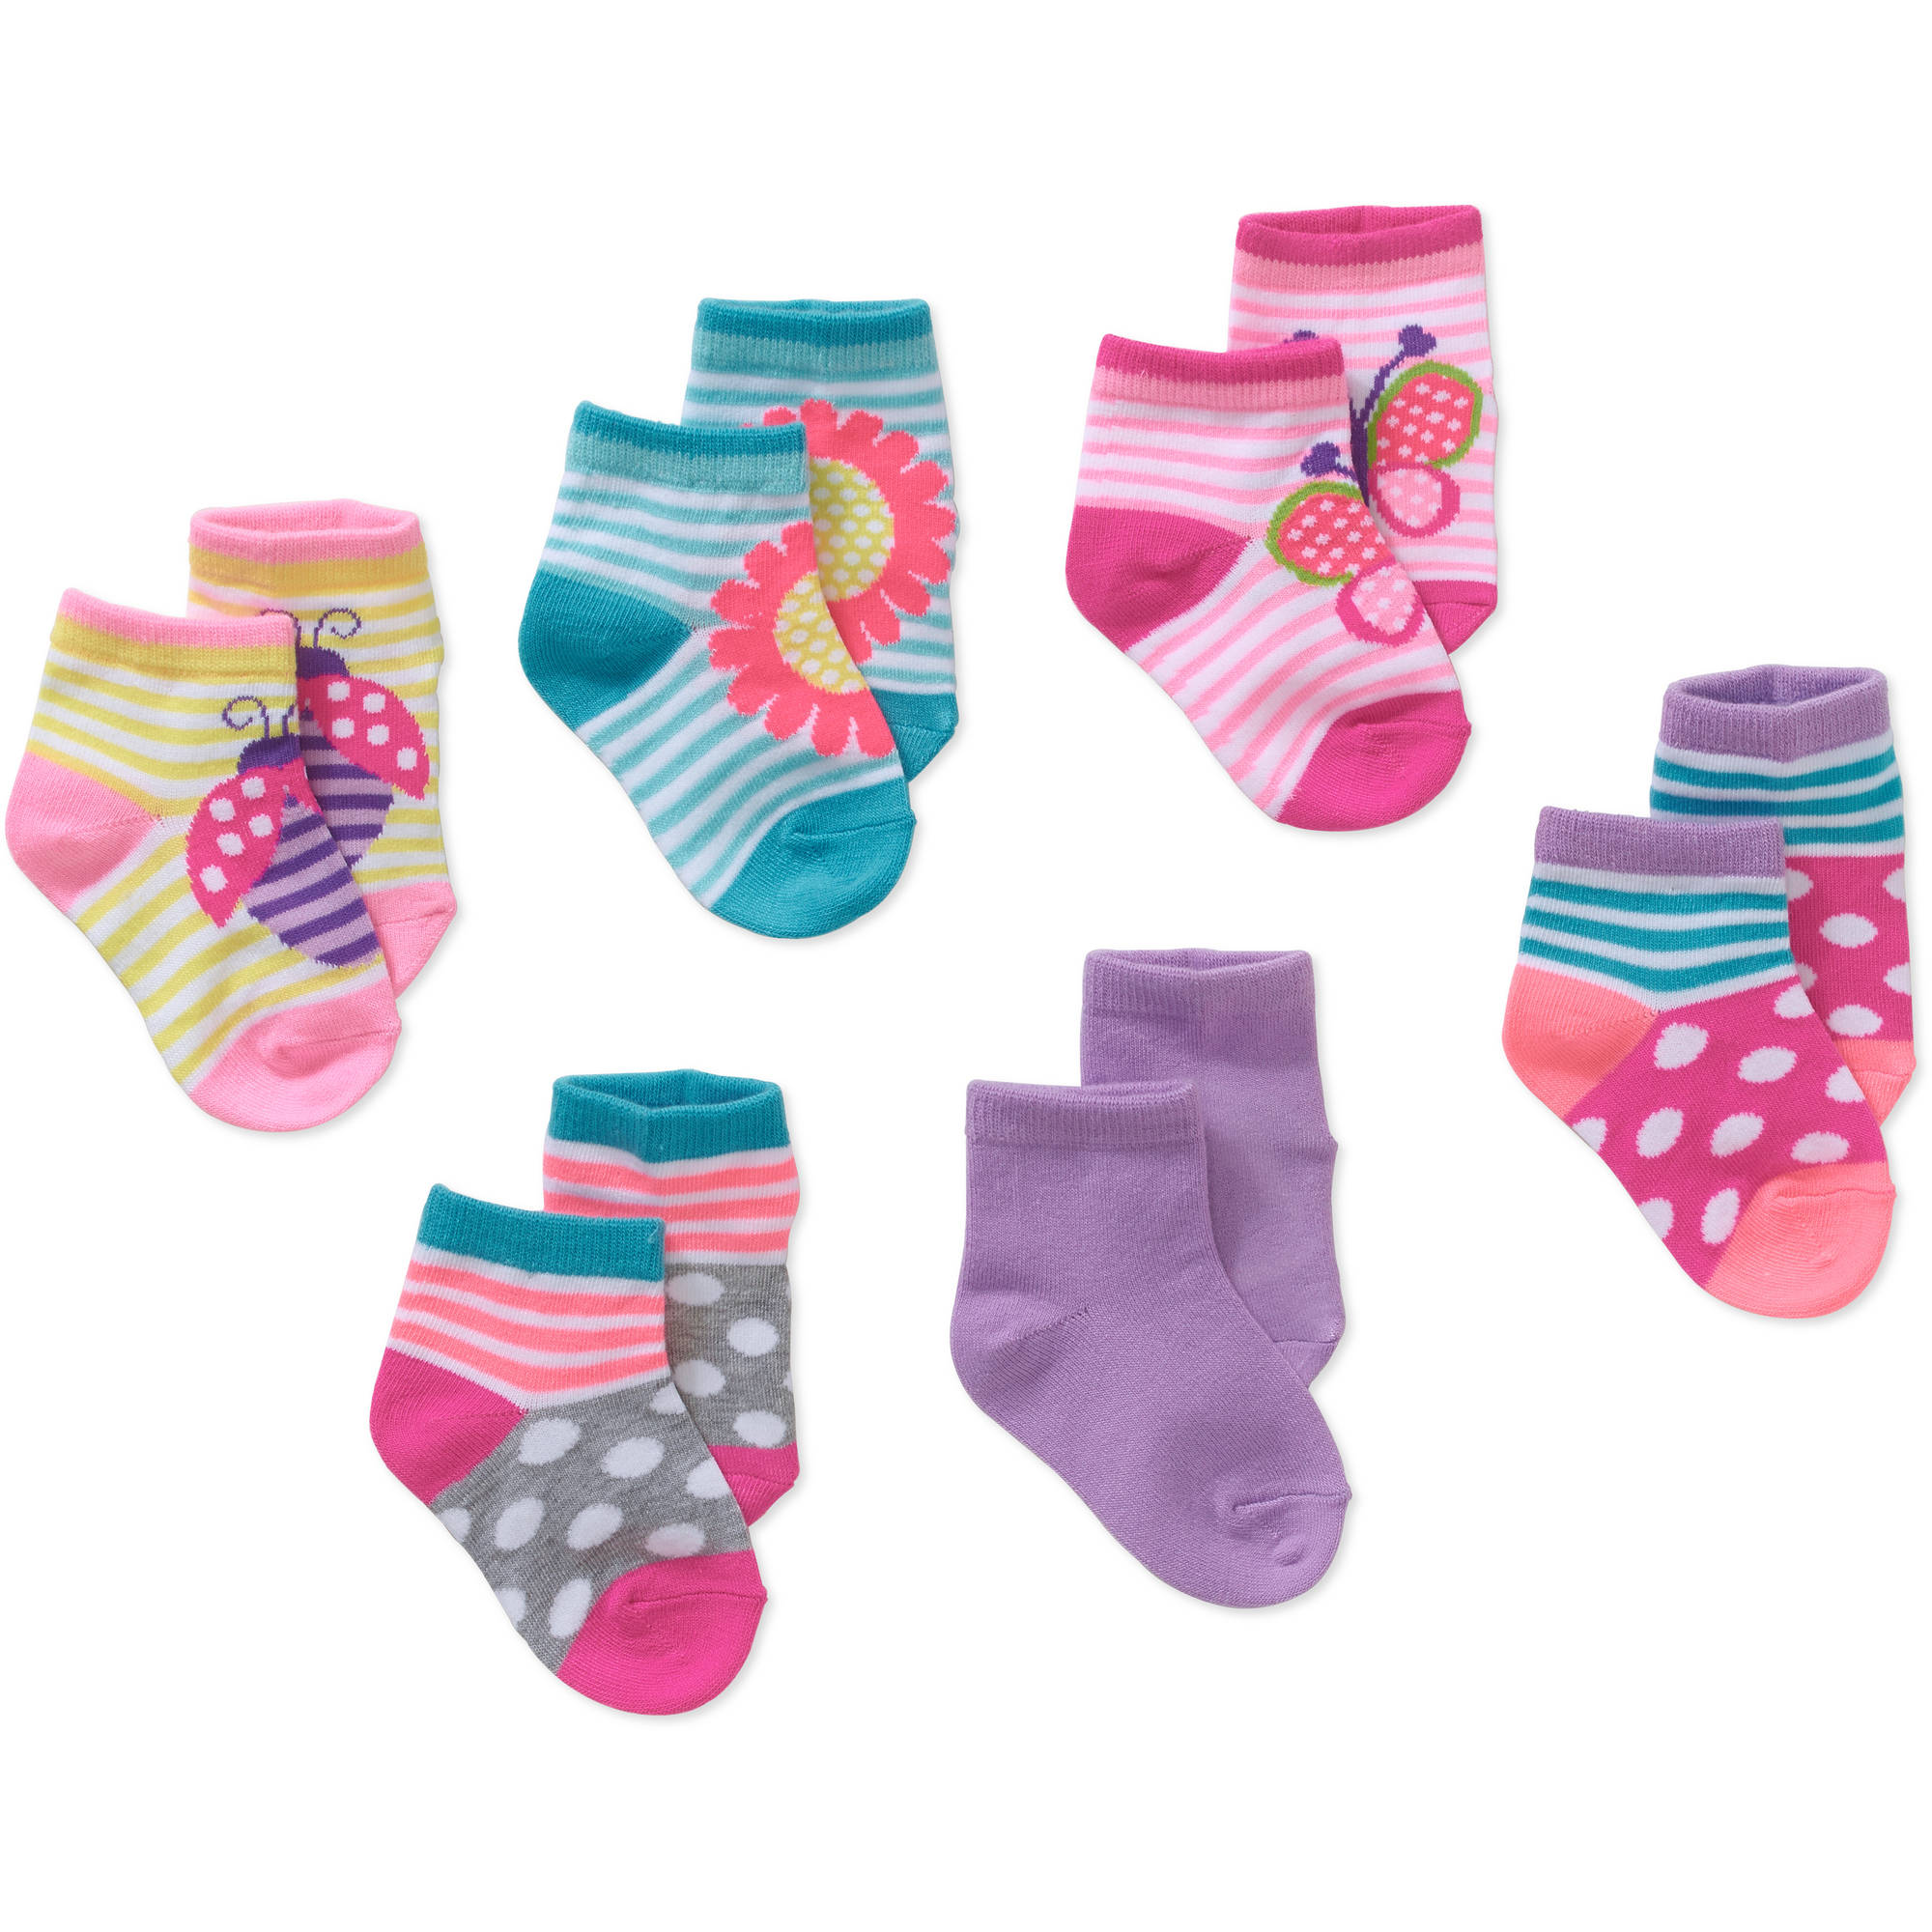 Garanimals Newborn to Toddler Baby Girl Shorty Butterfly Print Socks, 6-Pack Ages 0-5T